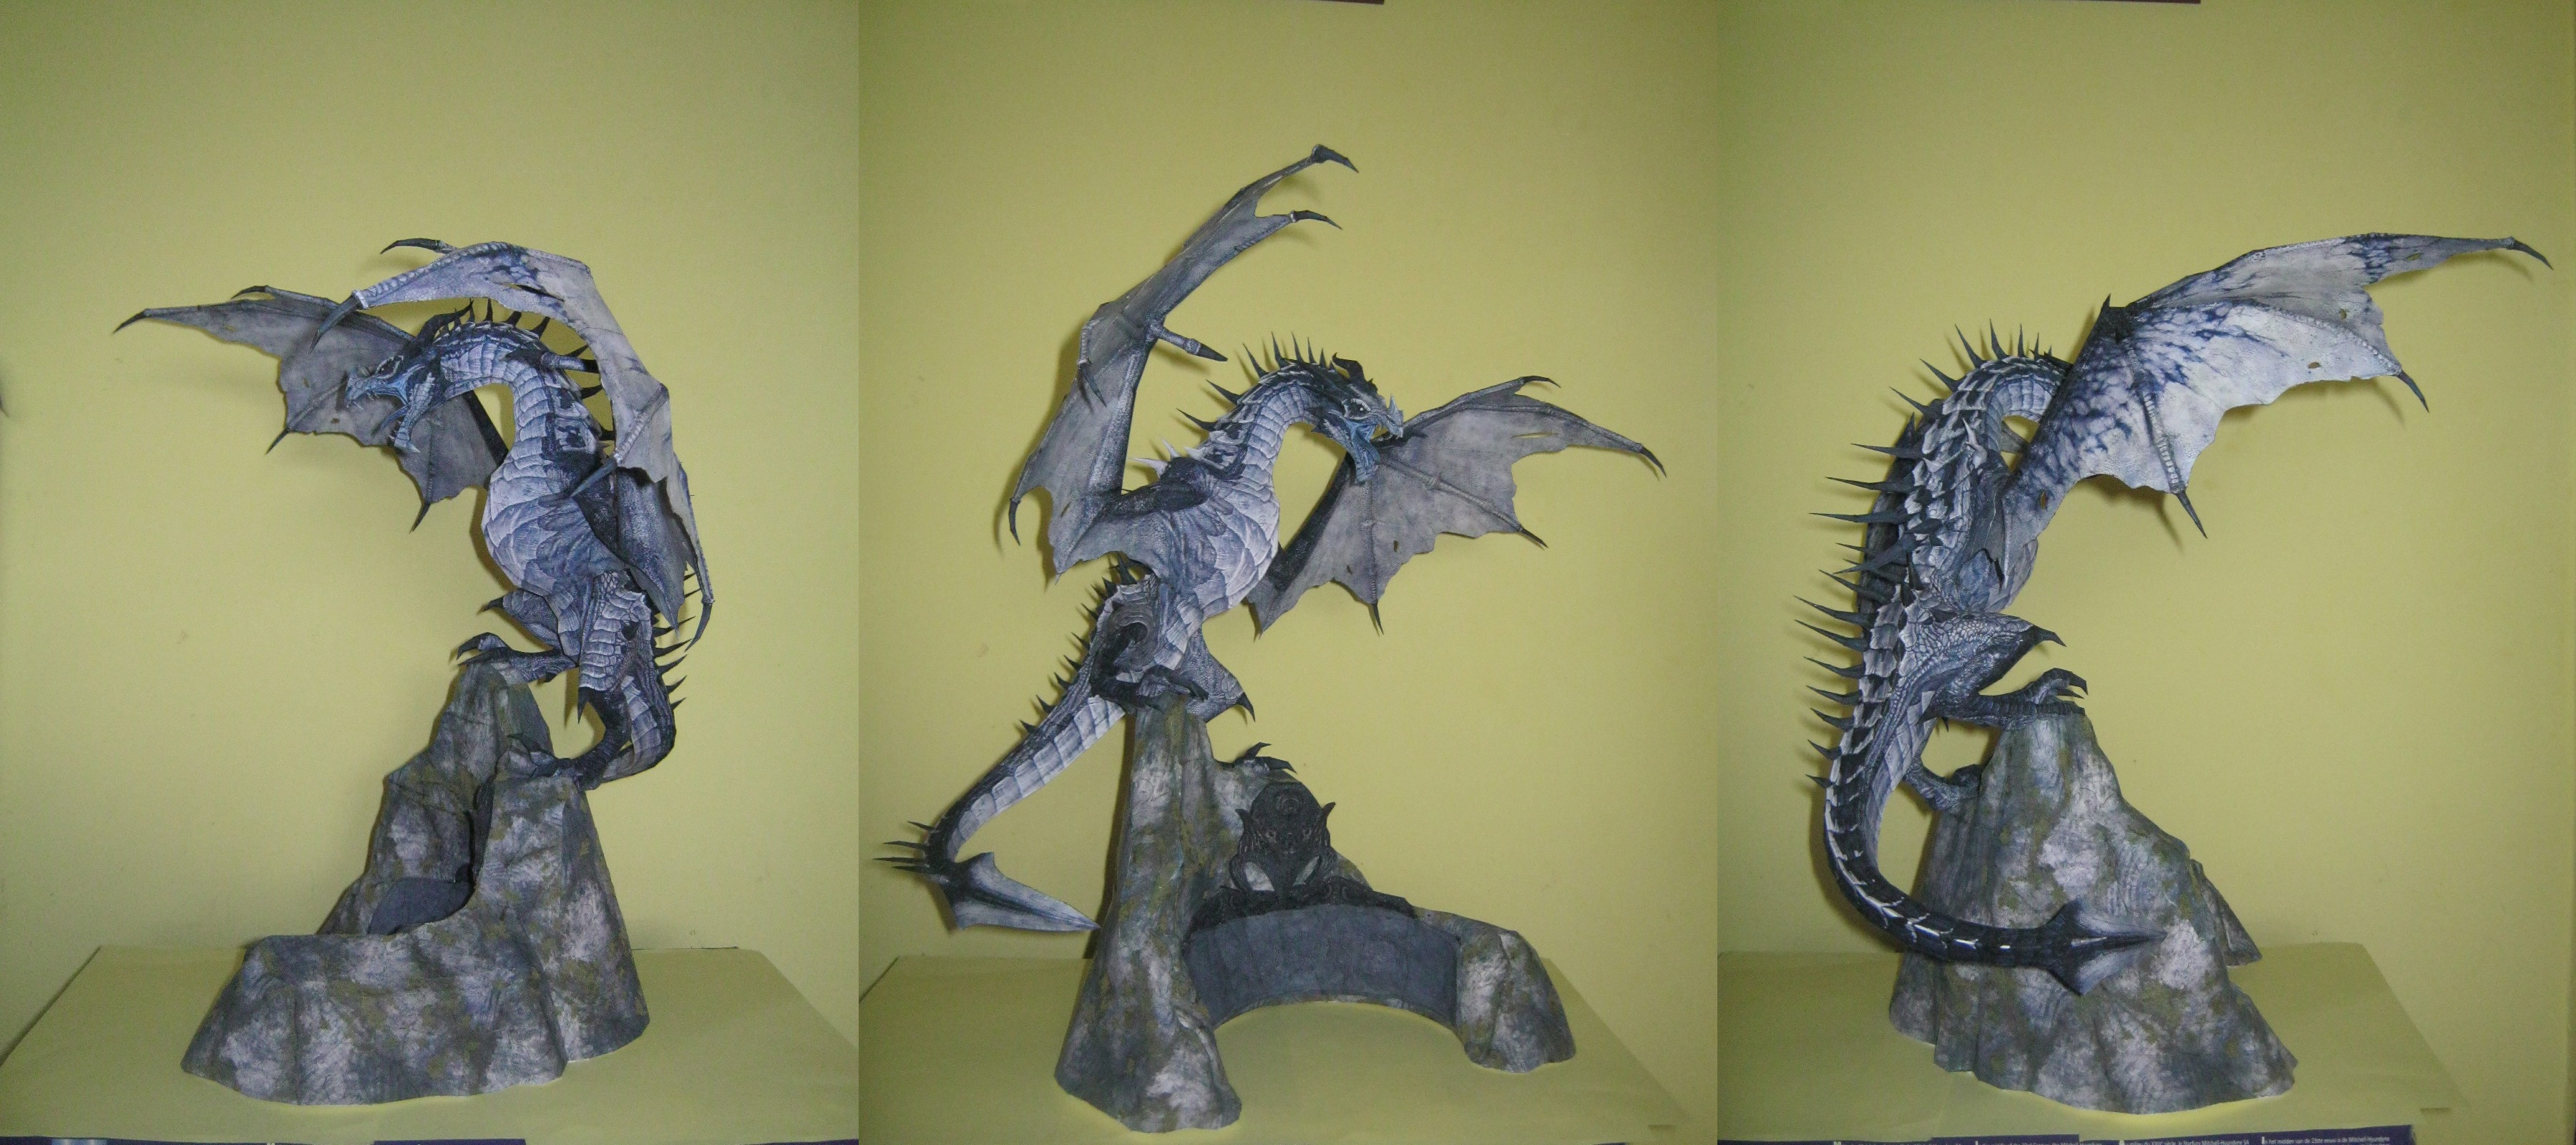 Skyrim - Frost Dragon MkII Papercraft by DaiShiHUN